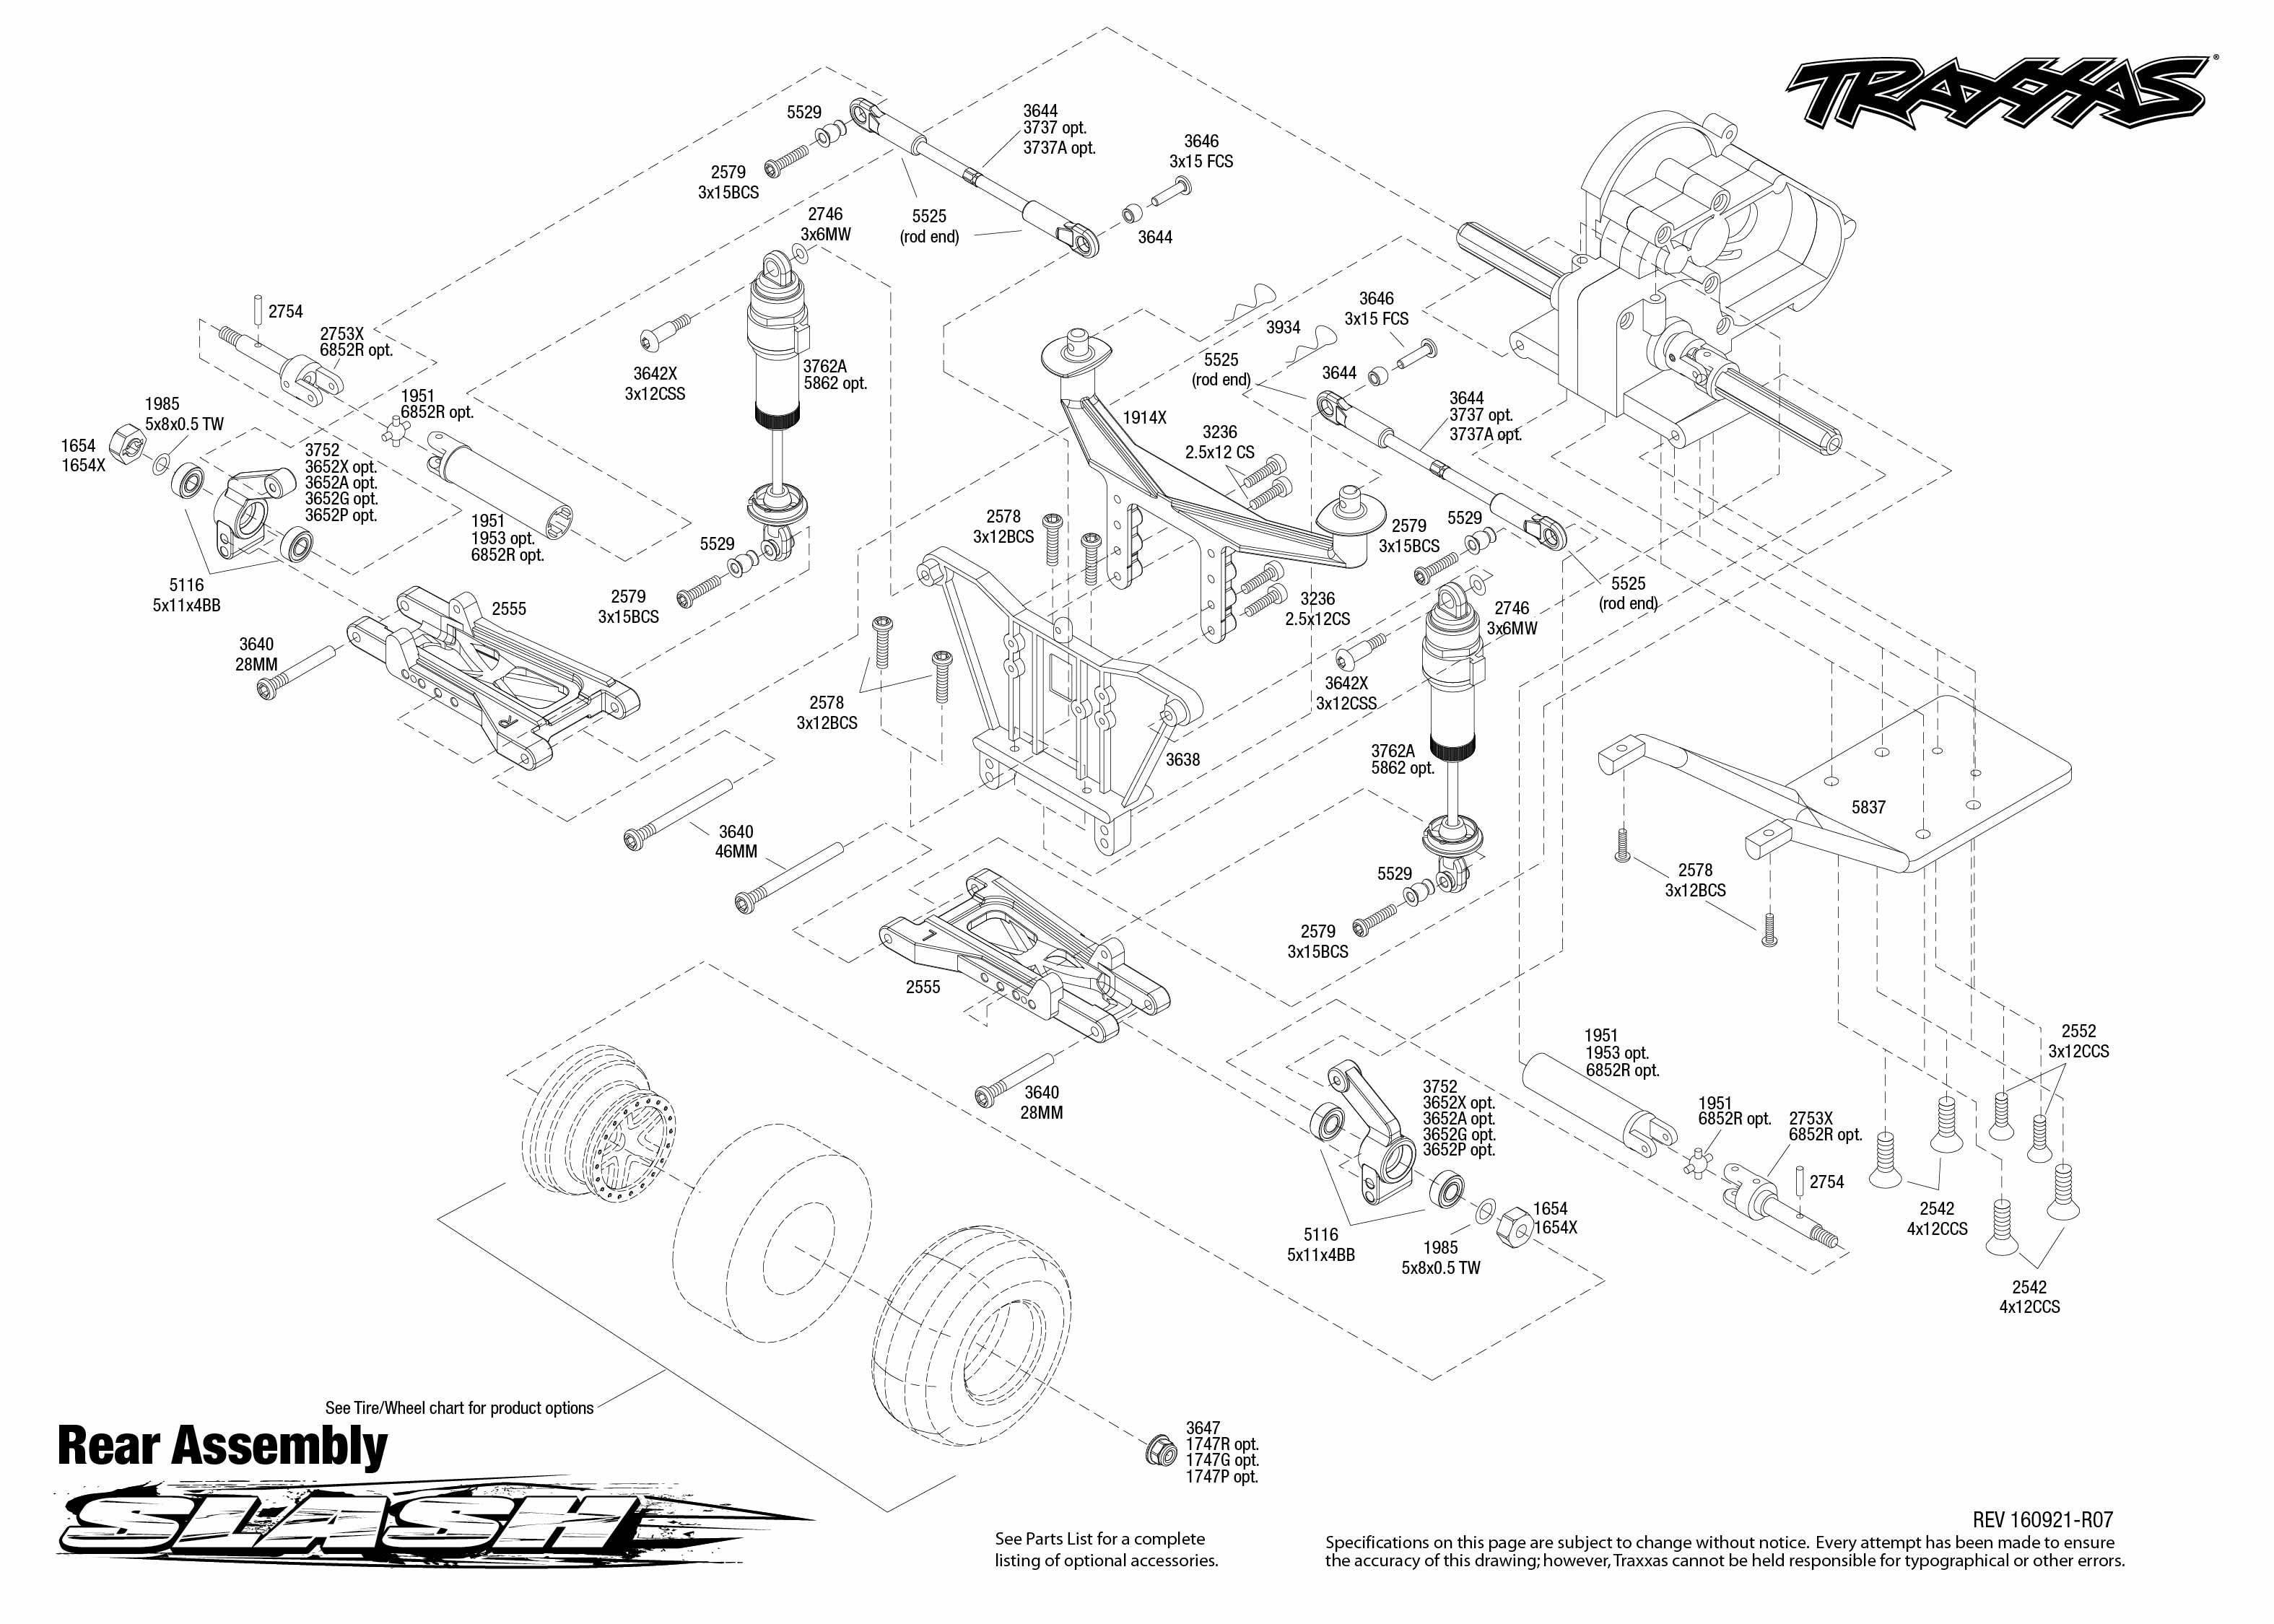 Exploded view: Traxxas Slash 1:10 TQ RTR onboard audio